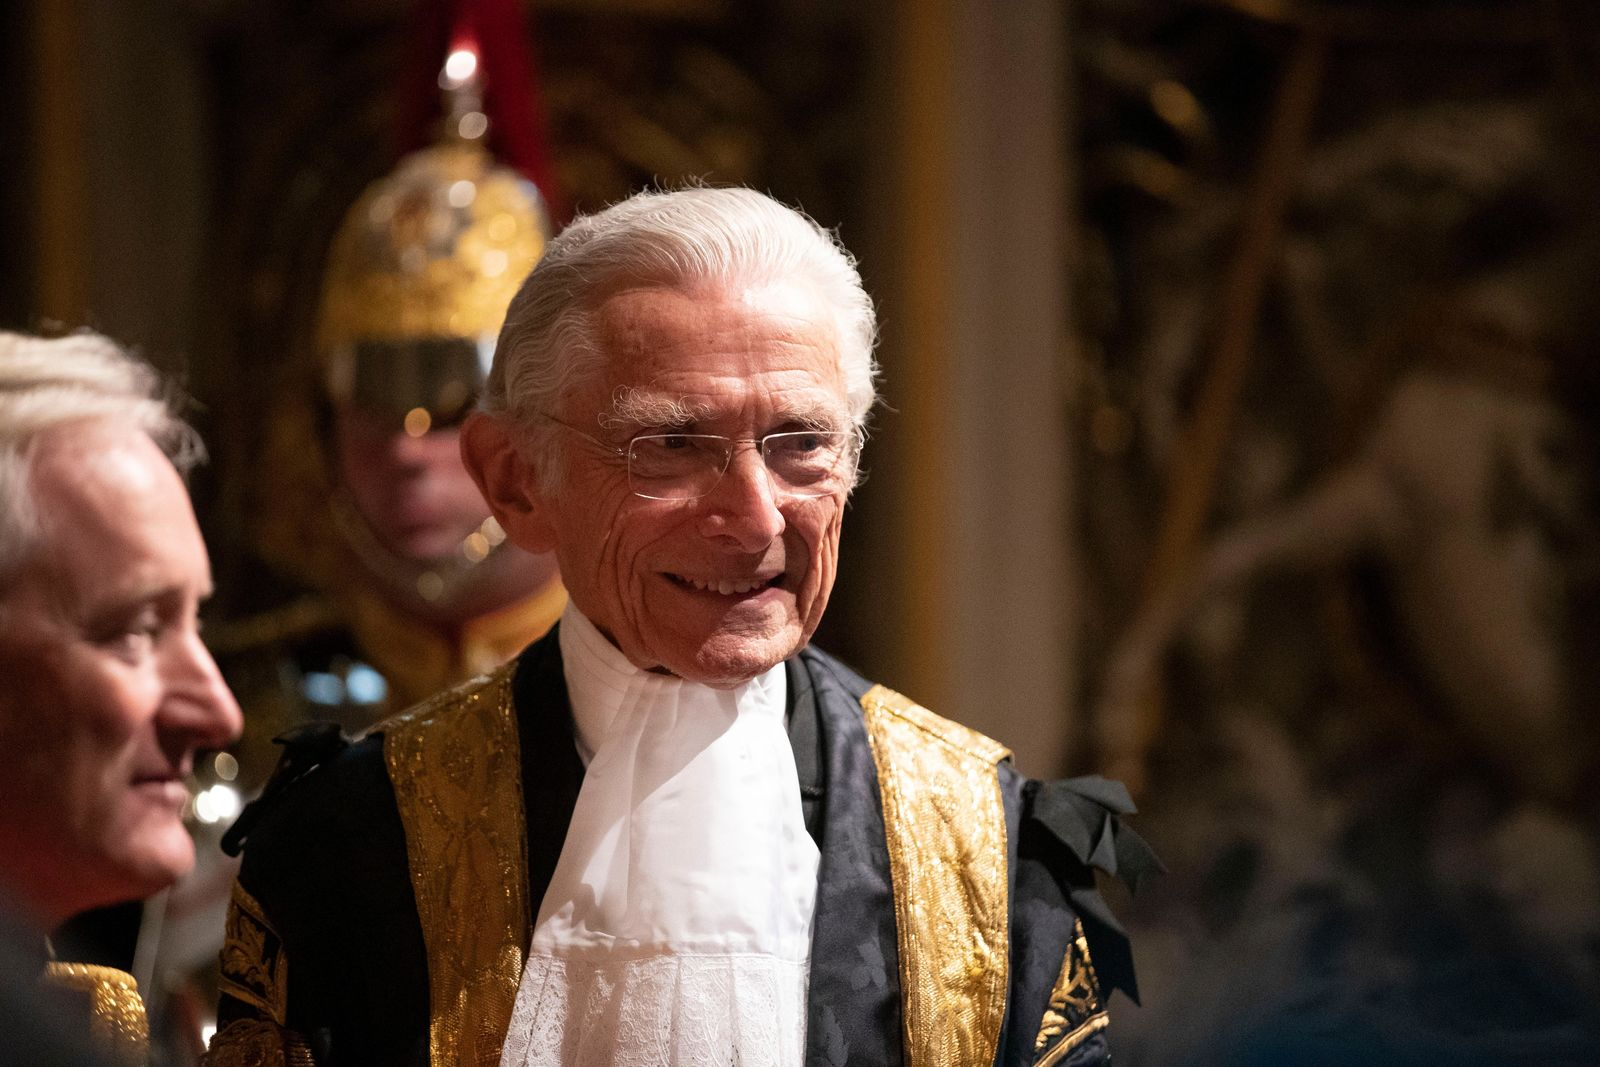 Lord Speaker Norman Fowler speaks to dignitaries in the Norman Porch at the Palace of Westminster and the Houses of Parliament at the State Opening of Parliament ceremony in London, Monday, Oct. 14, 2019. (AP Photo/Matt Dunham, Pool)